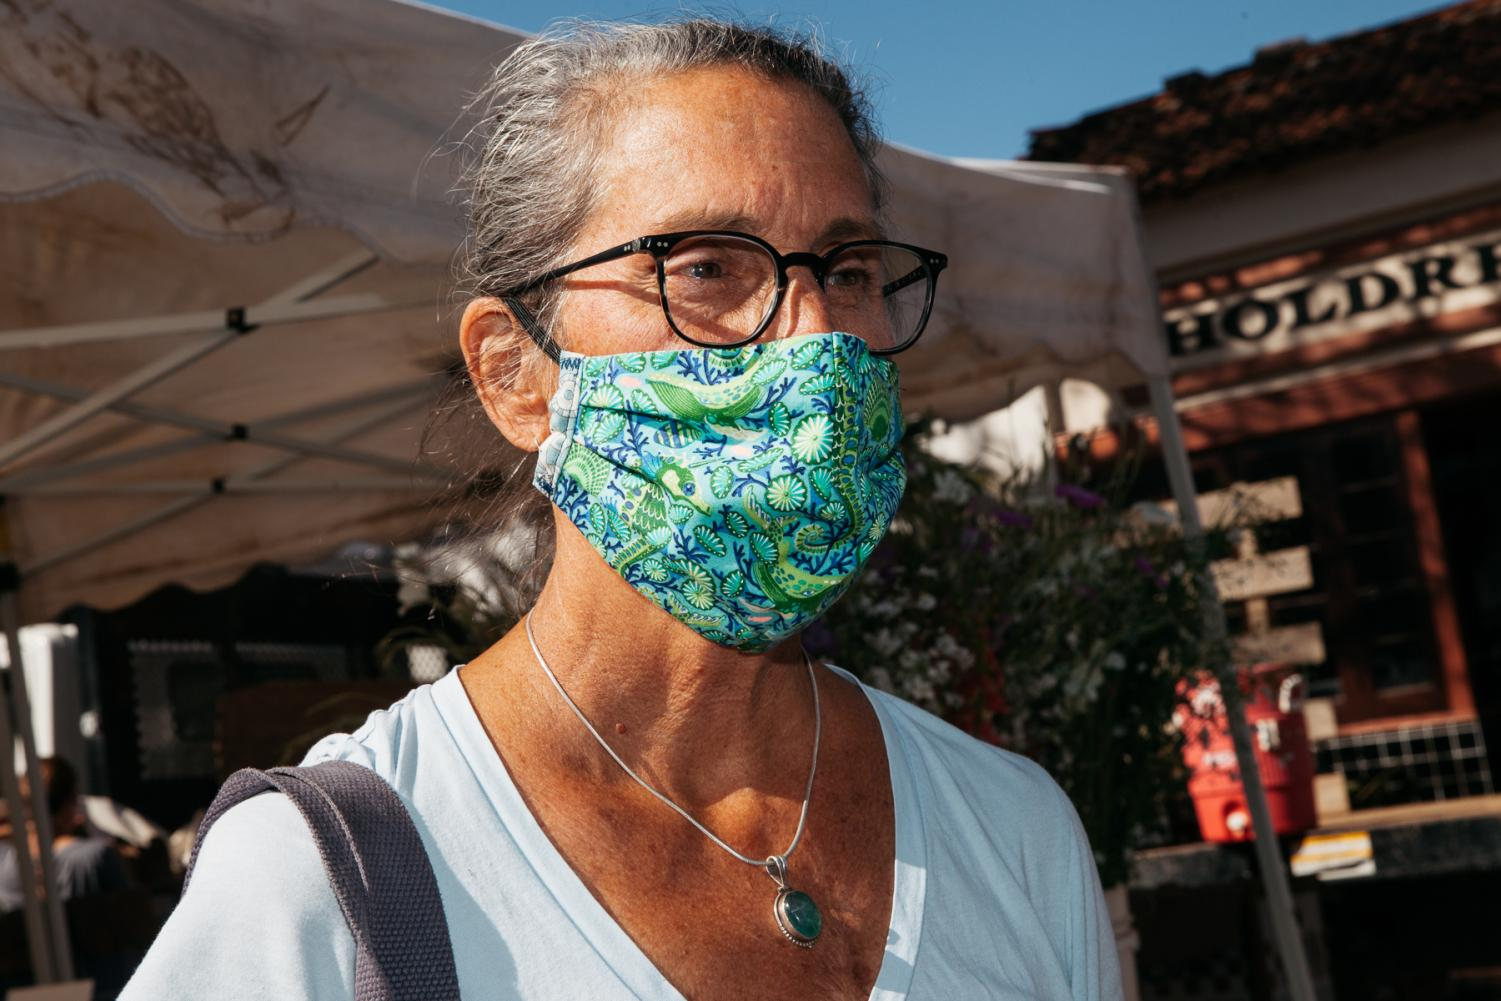 Kate Maxfield in a mask she made from fabric she found while cleaning out her house while sheltering in place on Tuesday, April 21, in Santa Barbara, Calif. Maxfield has since made masks for nearly 50 people.